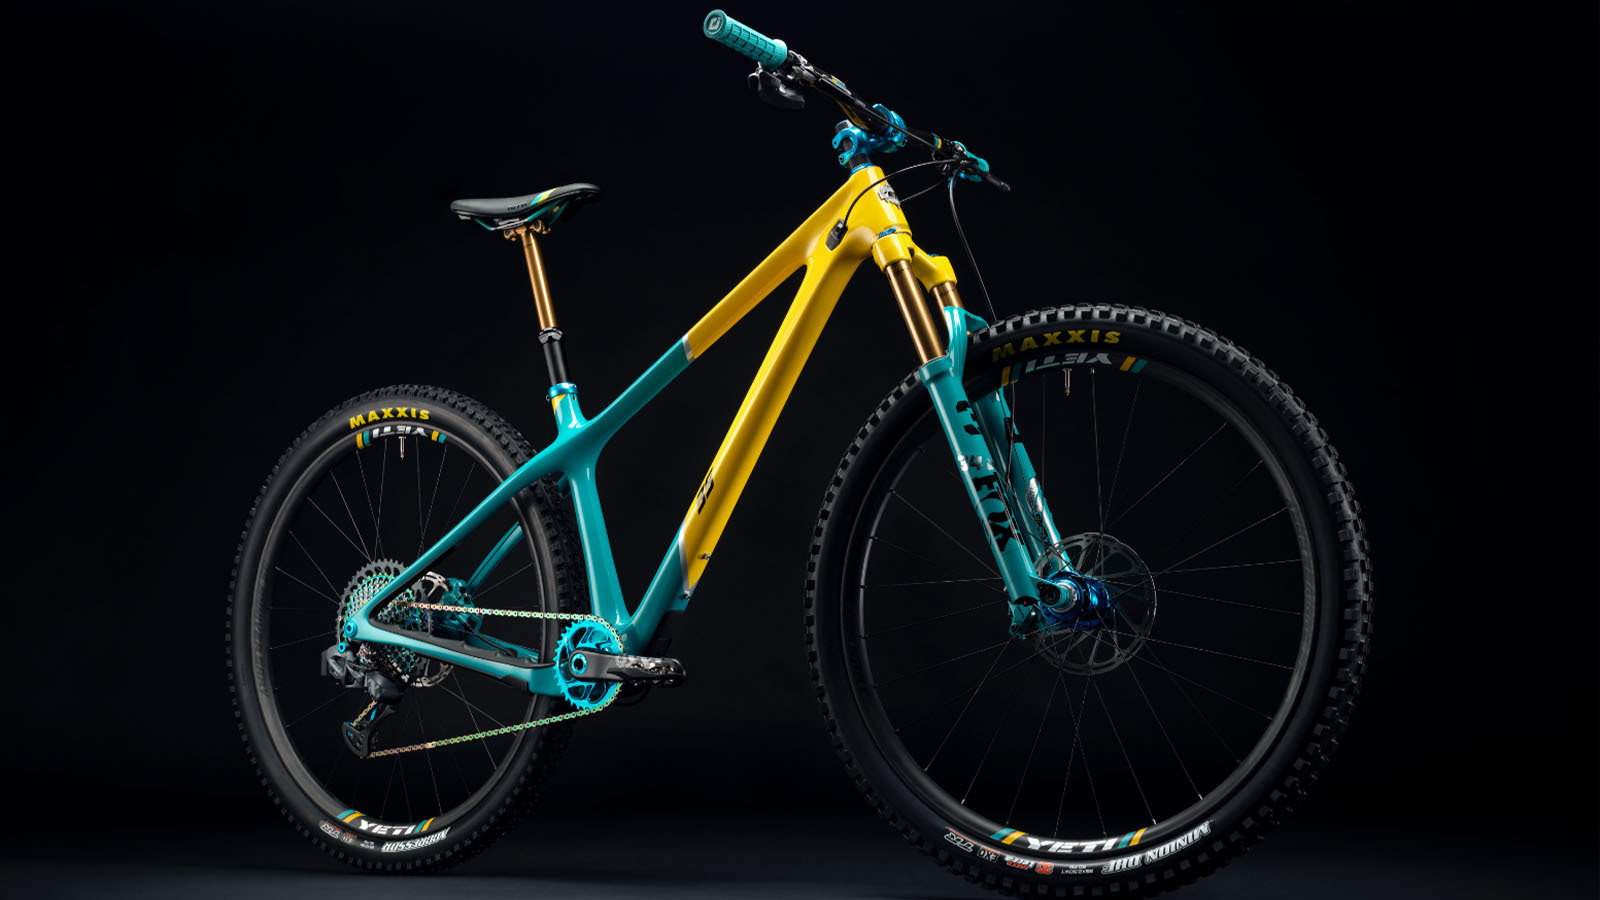 Yeti's Very Limited Edition 35th Anniversary ARC